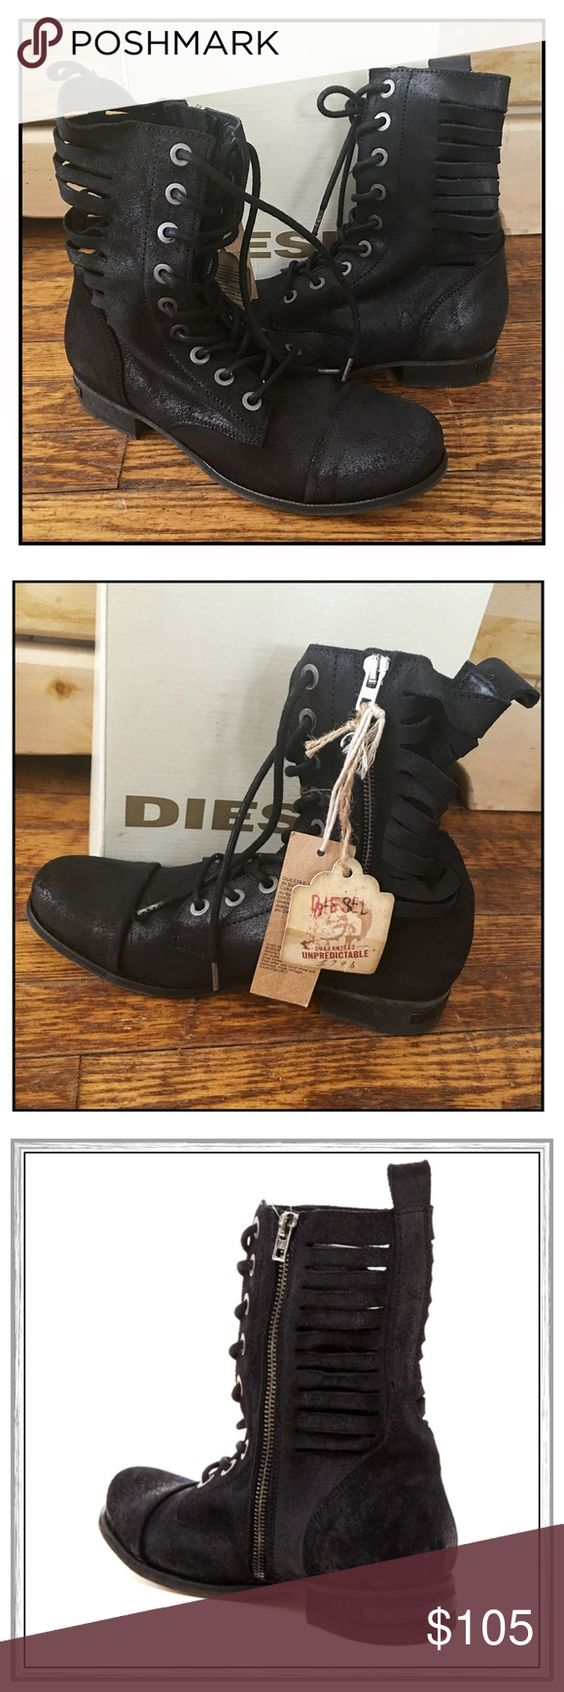 """✨Diesel """"The Wildland"""" Boots✨ Diesel """"The Wildland"""" Lace-Up Boots With Cut-Out Shaft Detail✨Side Zip Closure With Stacked Heel✨Approx 8"""" Shaft Height And Approx 1"""" Heel✨Round Cap Toe And Soft, Broken-In Leather✨Beautiful Boots By Diesel✨NWT✨Size 7.5✨ Diesel Shoes Lace Up Boots"""